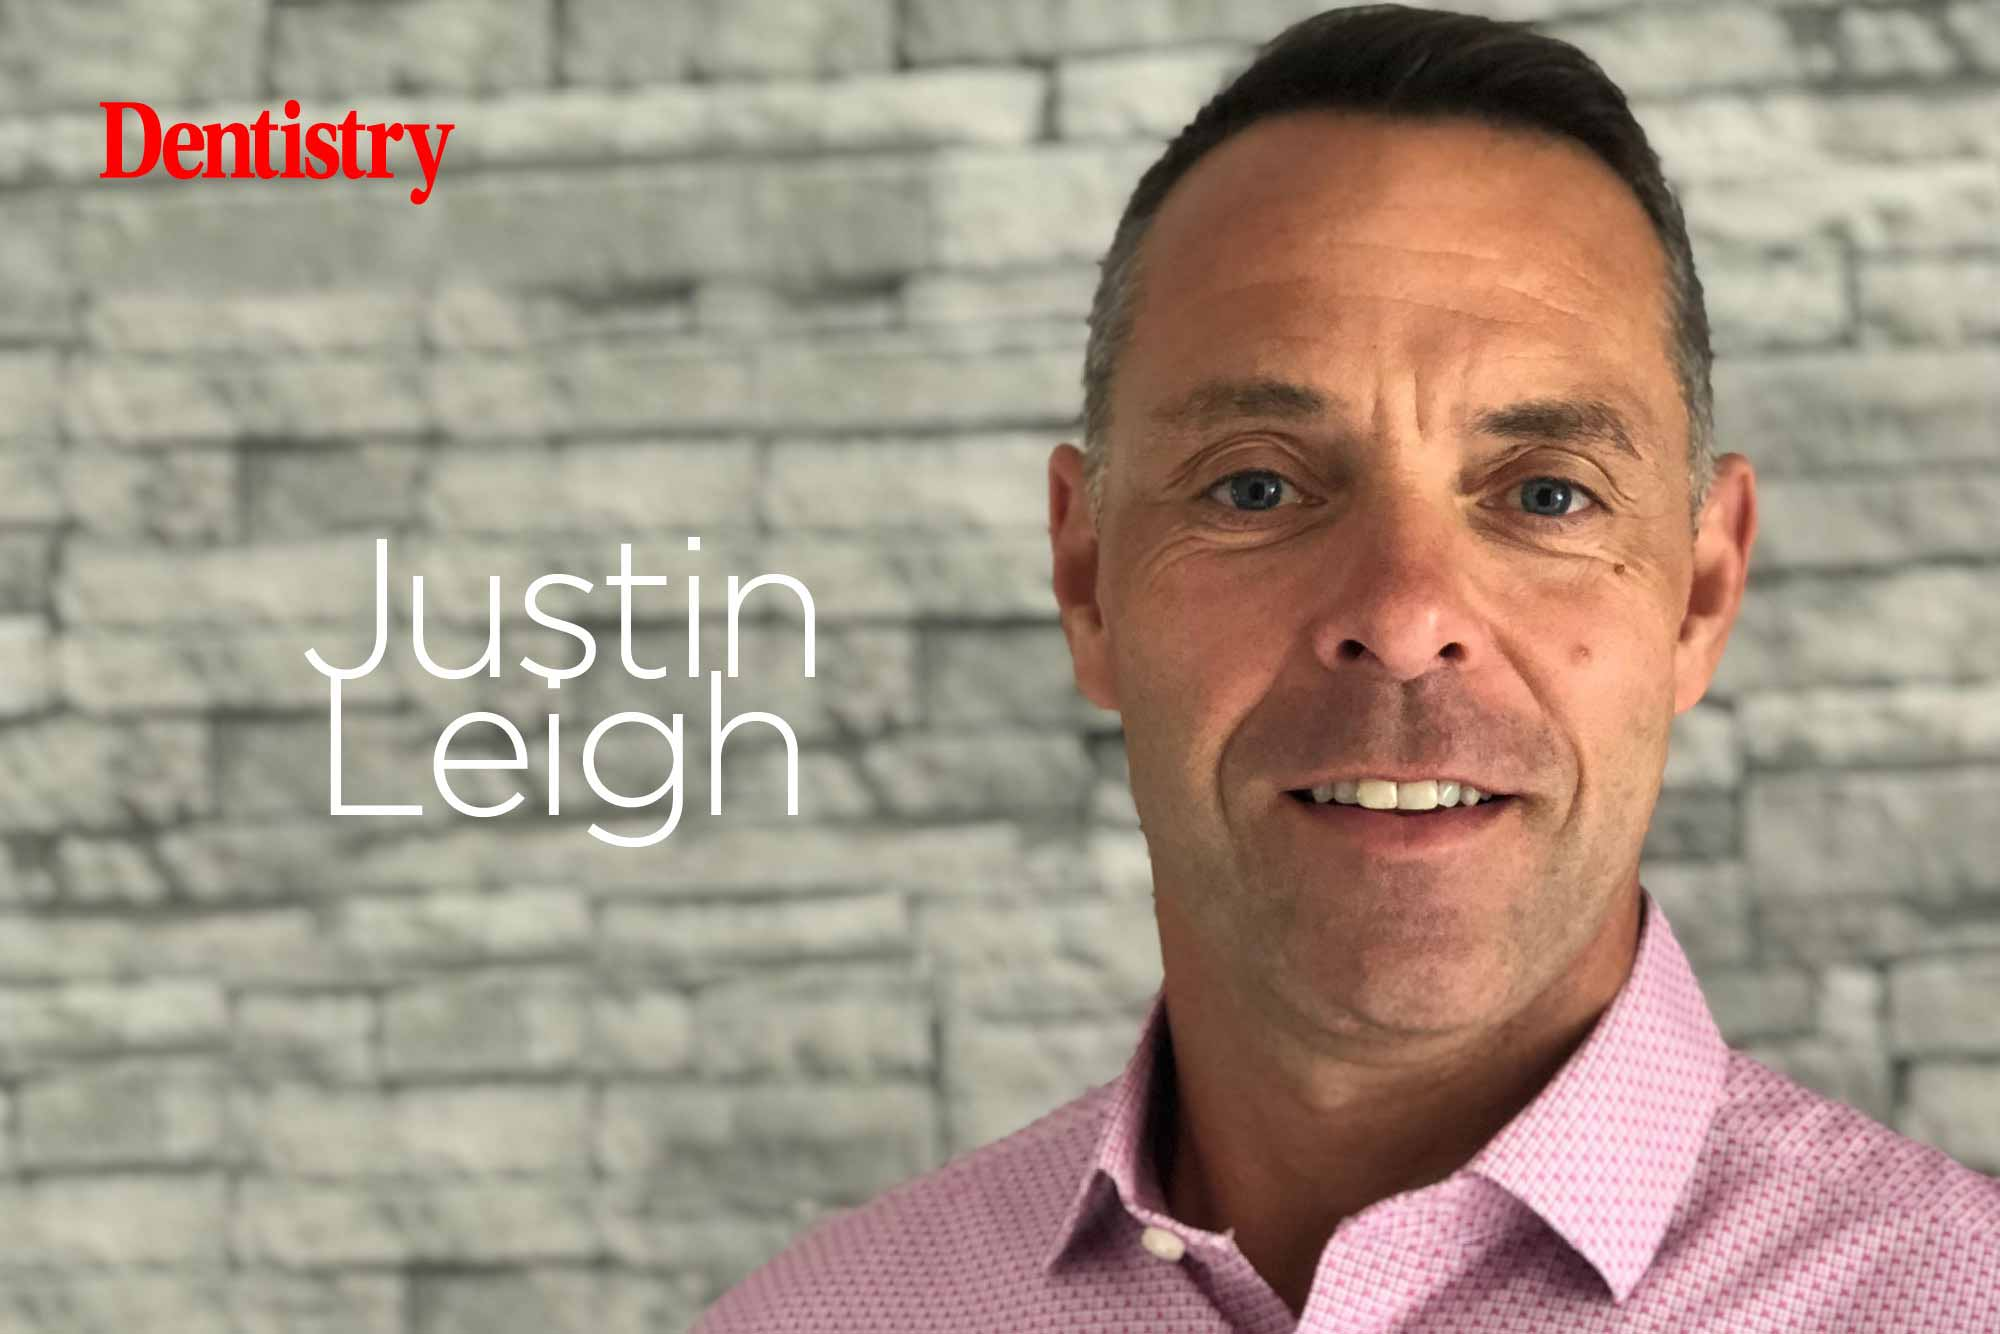 This week we speak to Justin Leigh who discusses why he is passionate about breaking down stigmas surrounding sales in dentistry